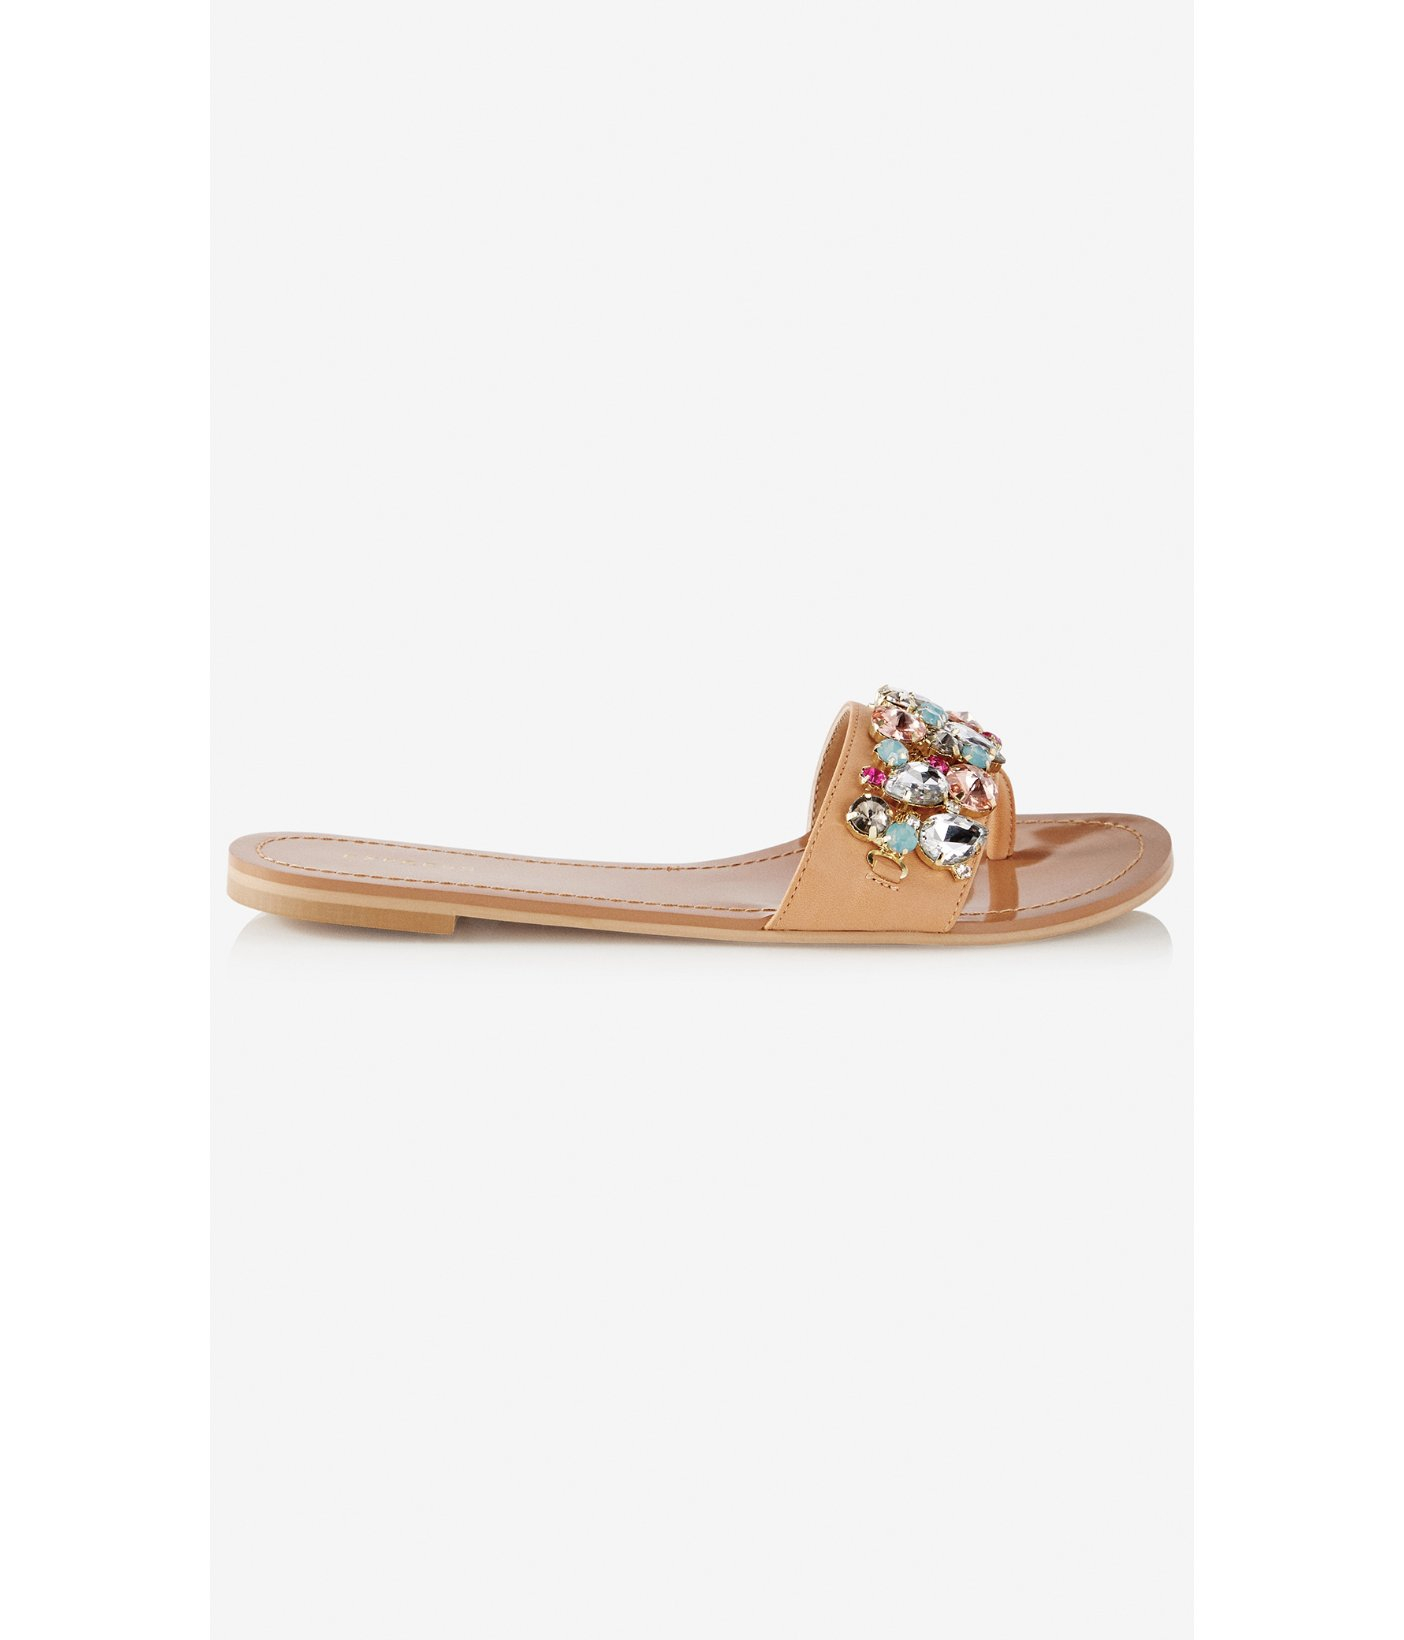 8abd7f8dd4d Lyst - Express Jeweled Wide Strap Thong Sandal in Natural